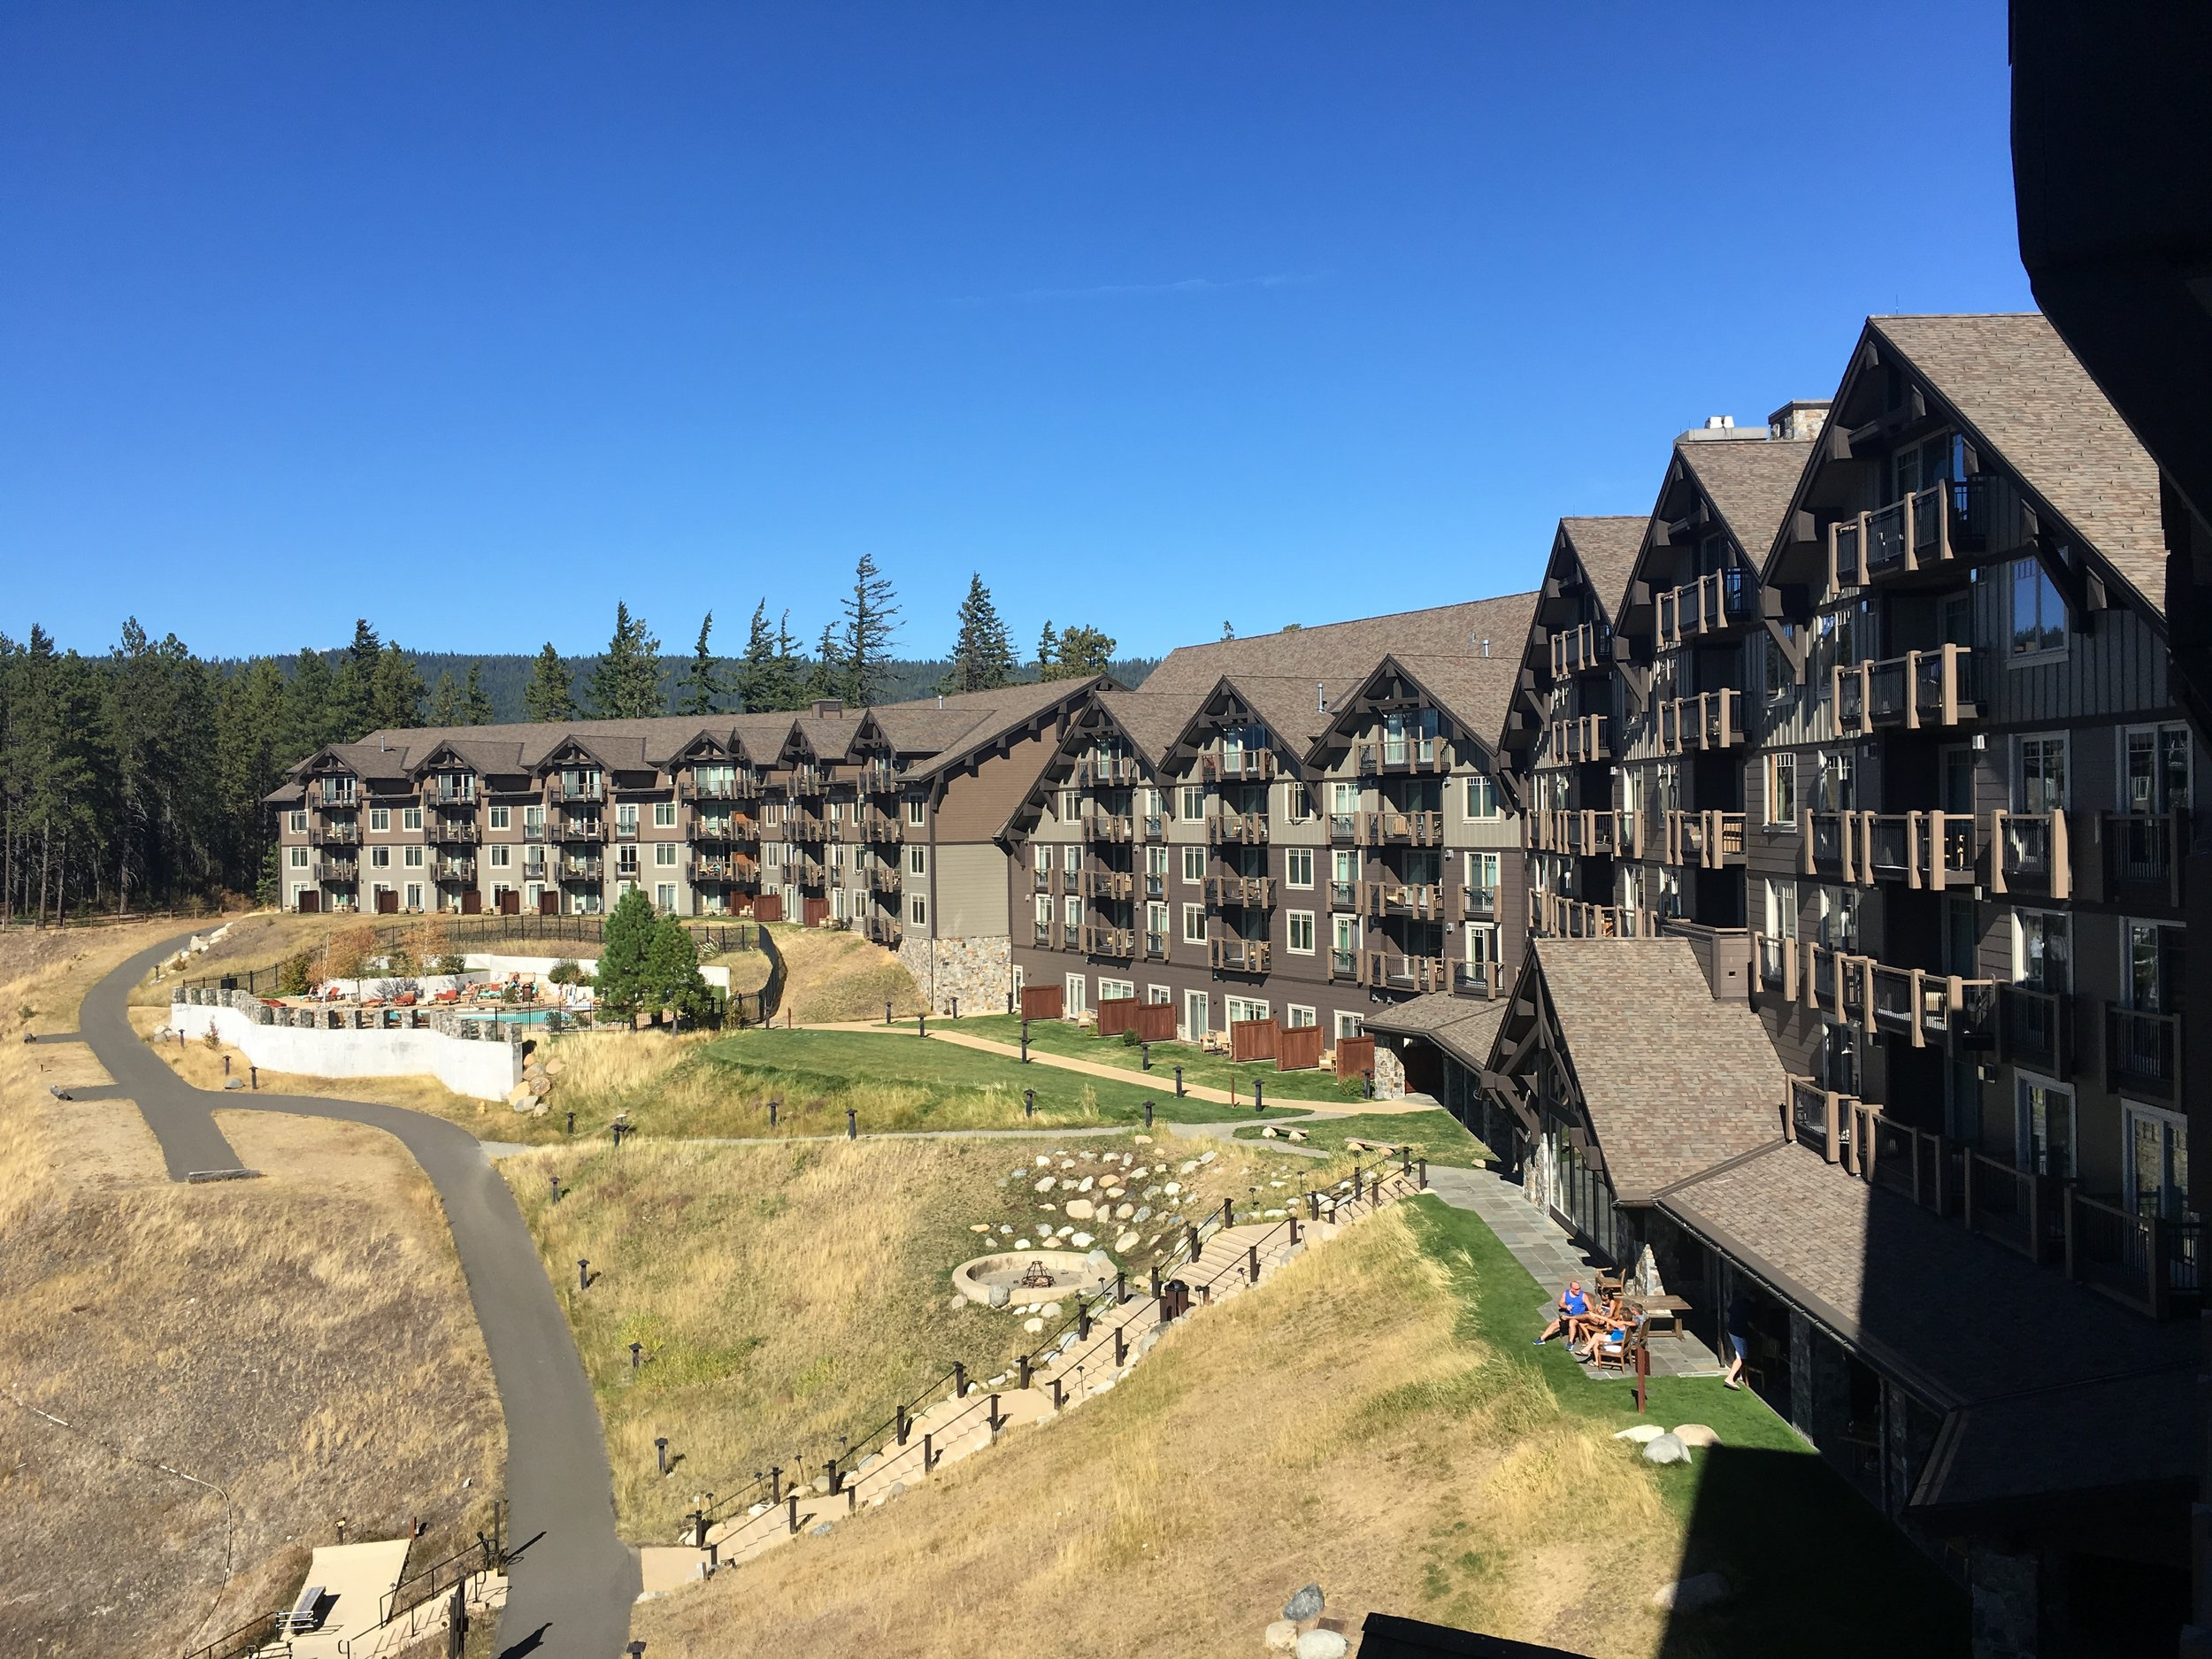 The view from our room at The Lodge at Suncadia